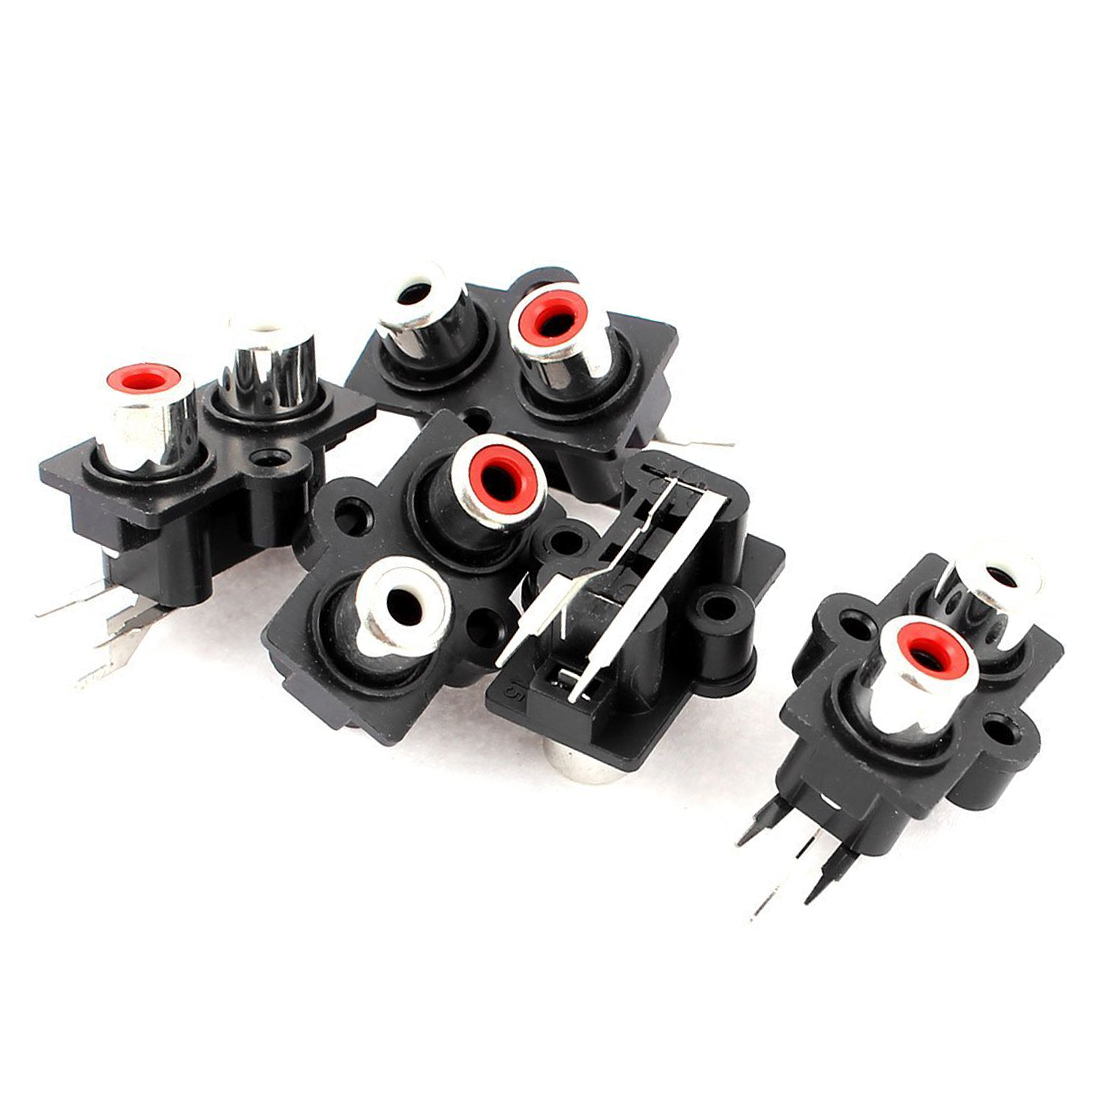 High Quality 5pcs PCB Mount 2 Position Stereo Audio Video Jack RCA Female Connector 5pcs lot high quality 2 pin snap in on off position snap boat button switch 12v 110v 250v t1405 p0 5